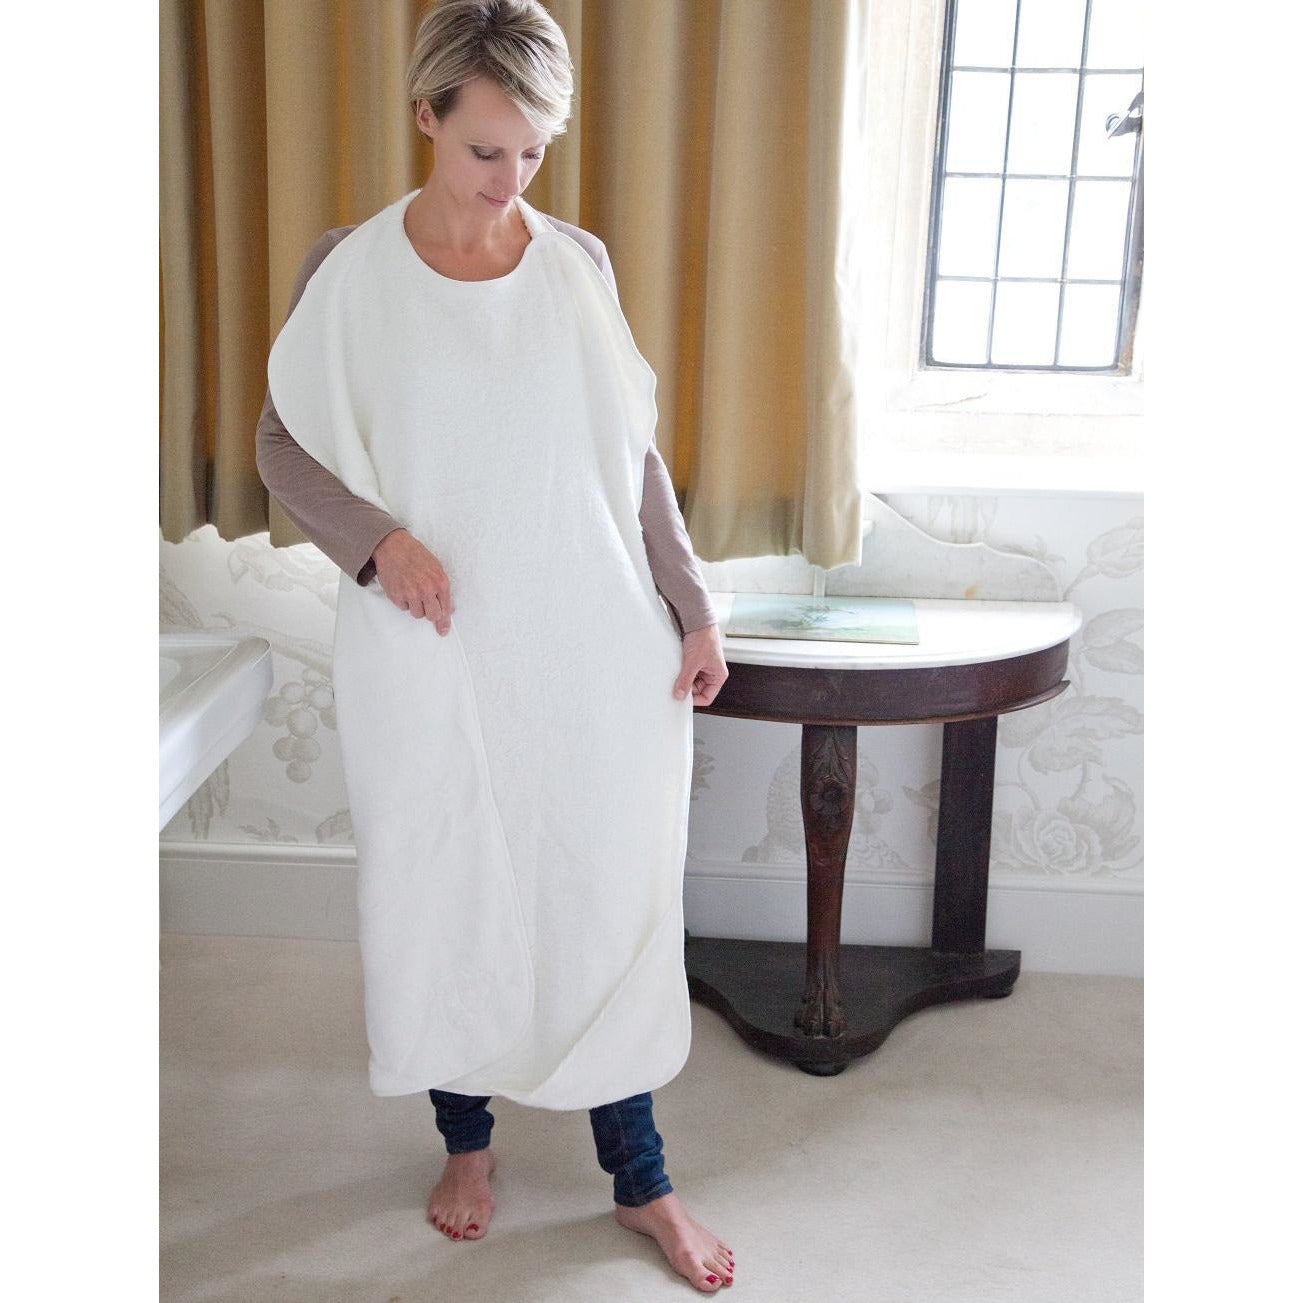 image to show size of Cuddledry apron towel and how to wear it